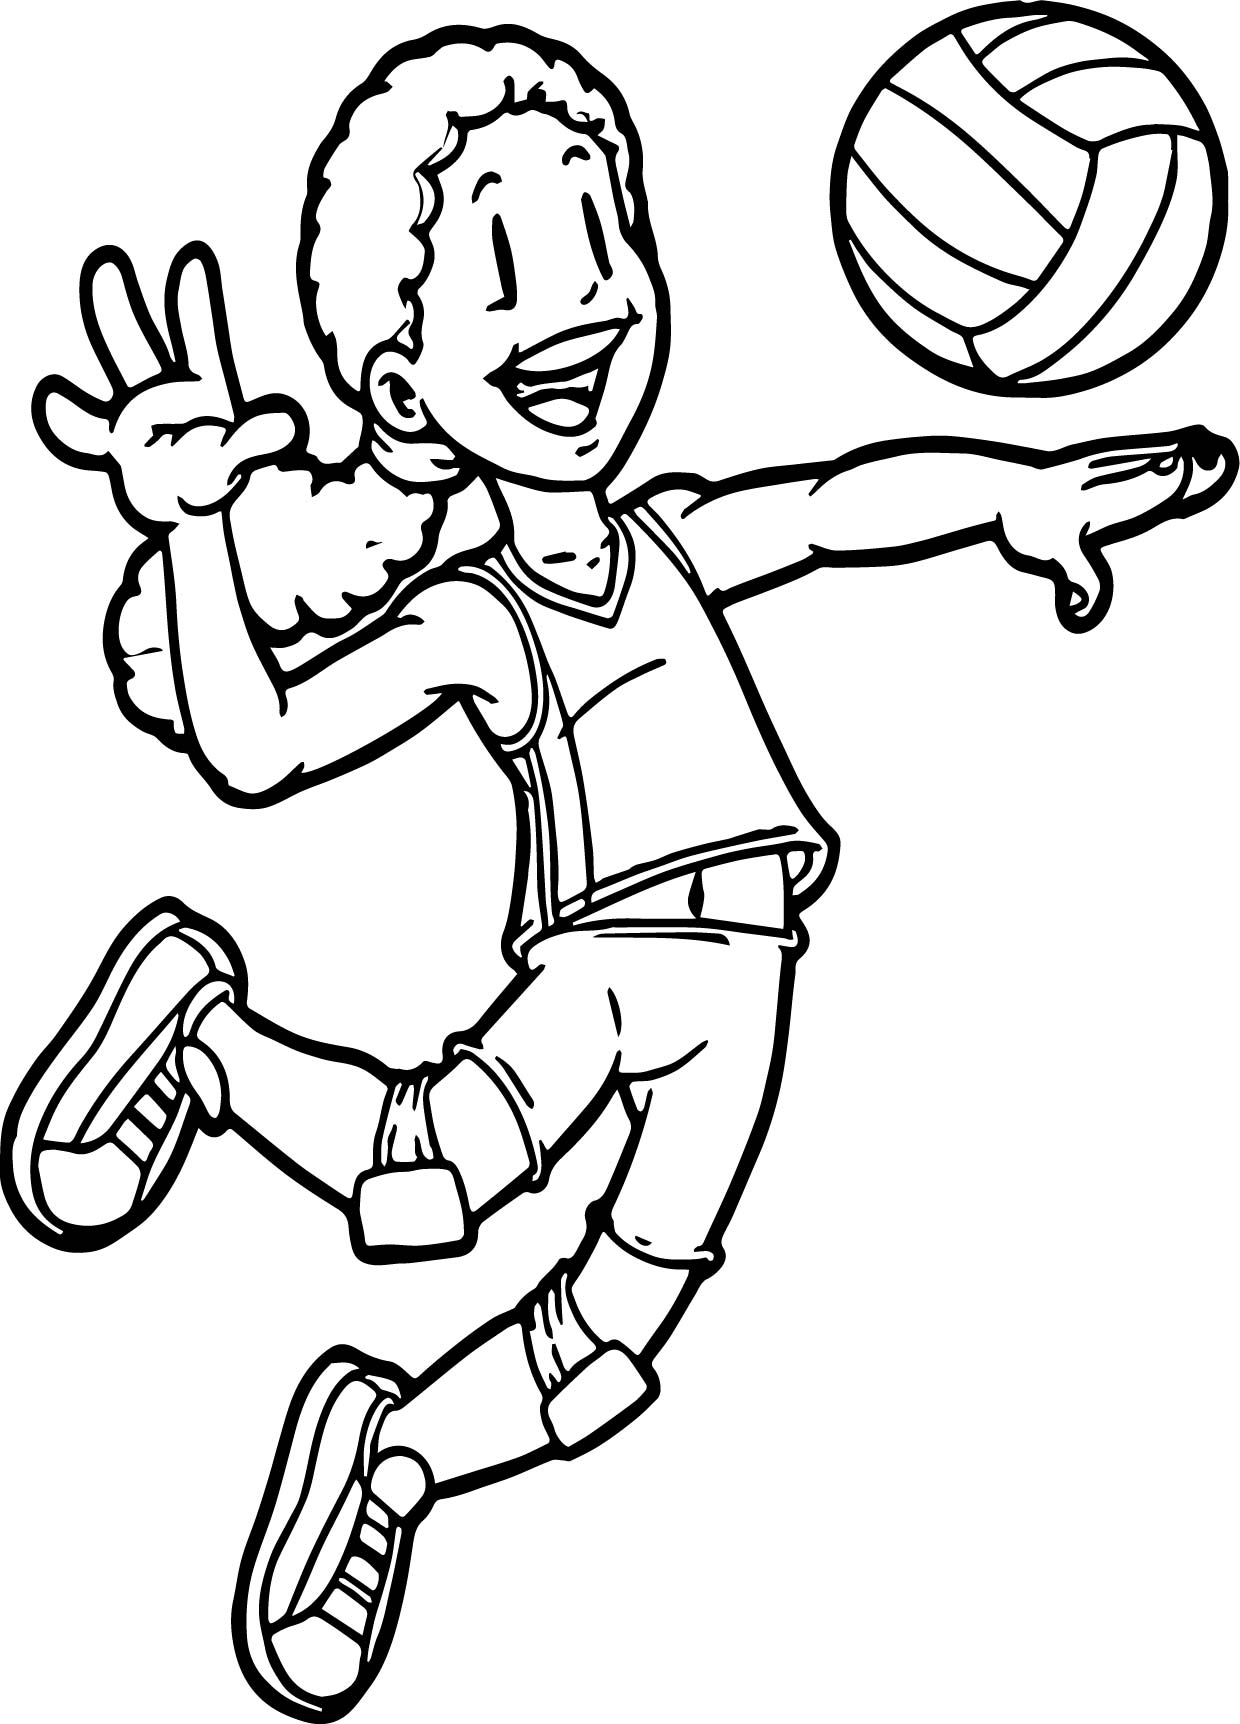 1240x1724 Kids Playing Sports Volleyball Coloring Page Wecoloringpage